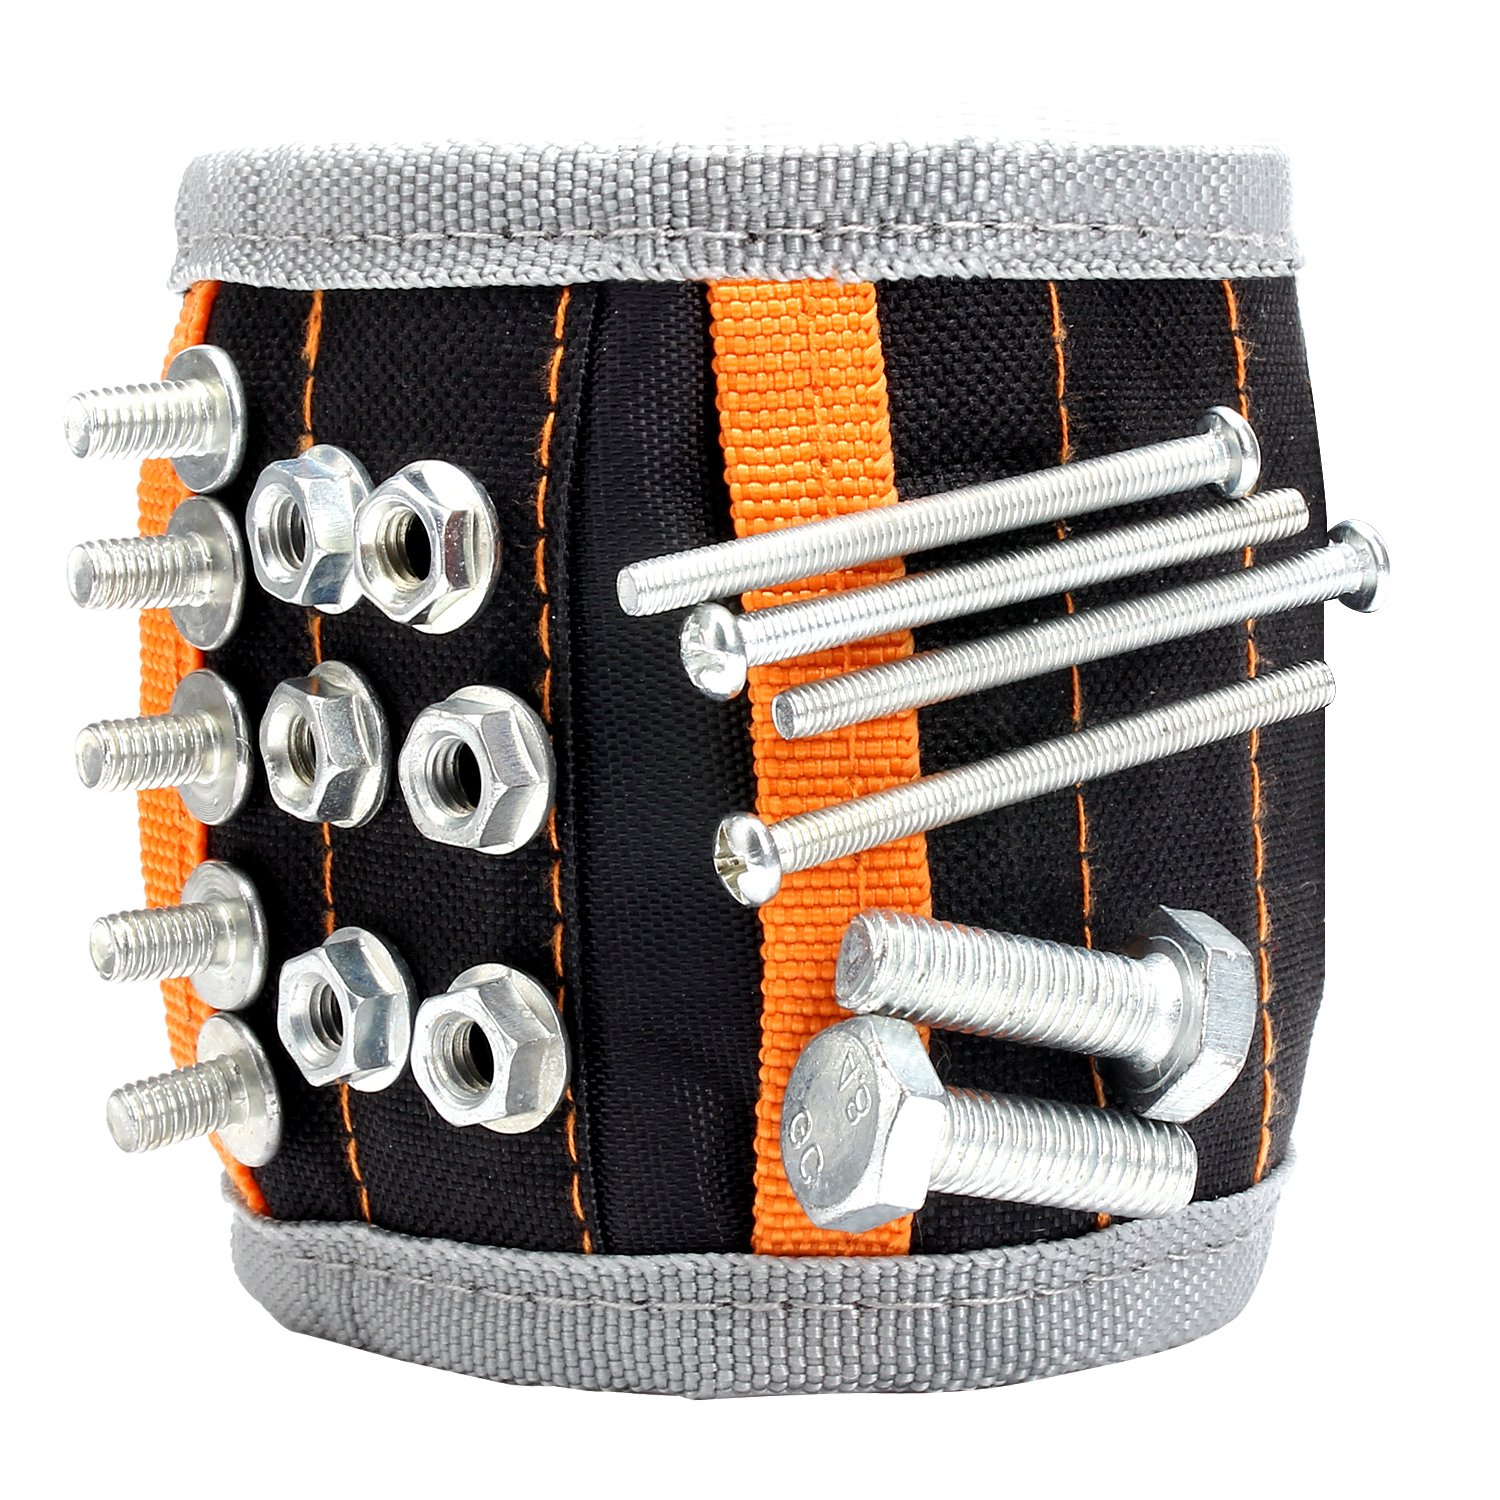 UnaMela Magnetic Wristband,with 5 LightWeight Strong Magnets for Holding Screws,Nails,Bolts,Drill Bits,and Other Small Tools - Perfect Gift for Men, Father/Dad, Husband, Boyfriend, Women (Black)